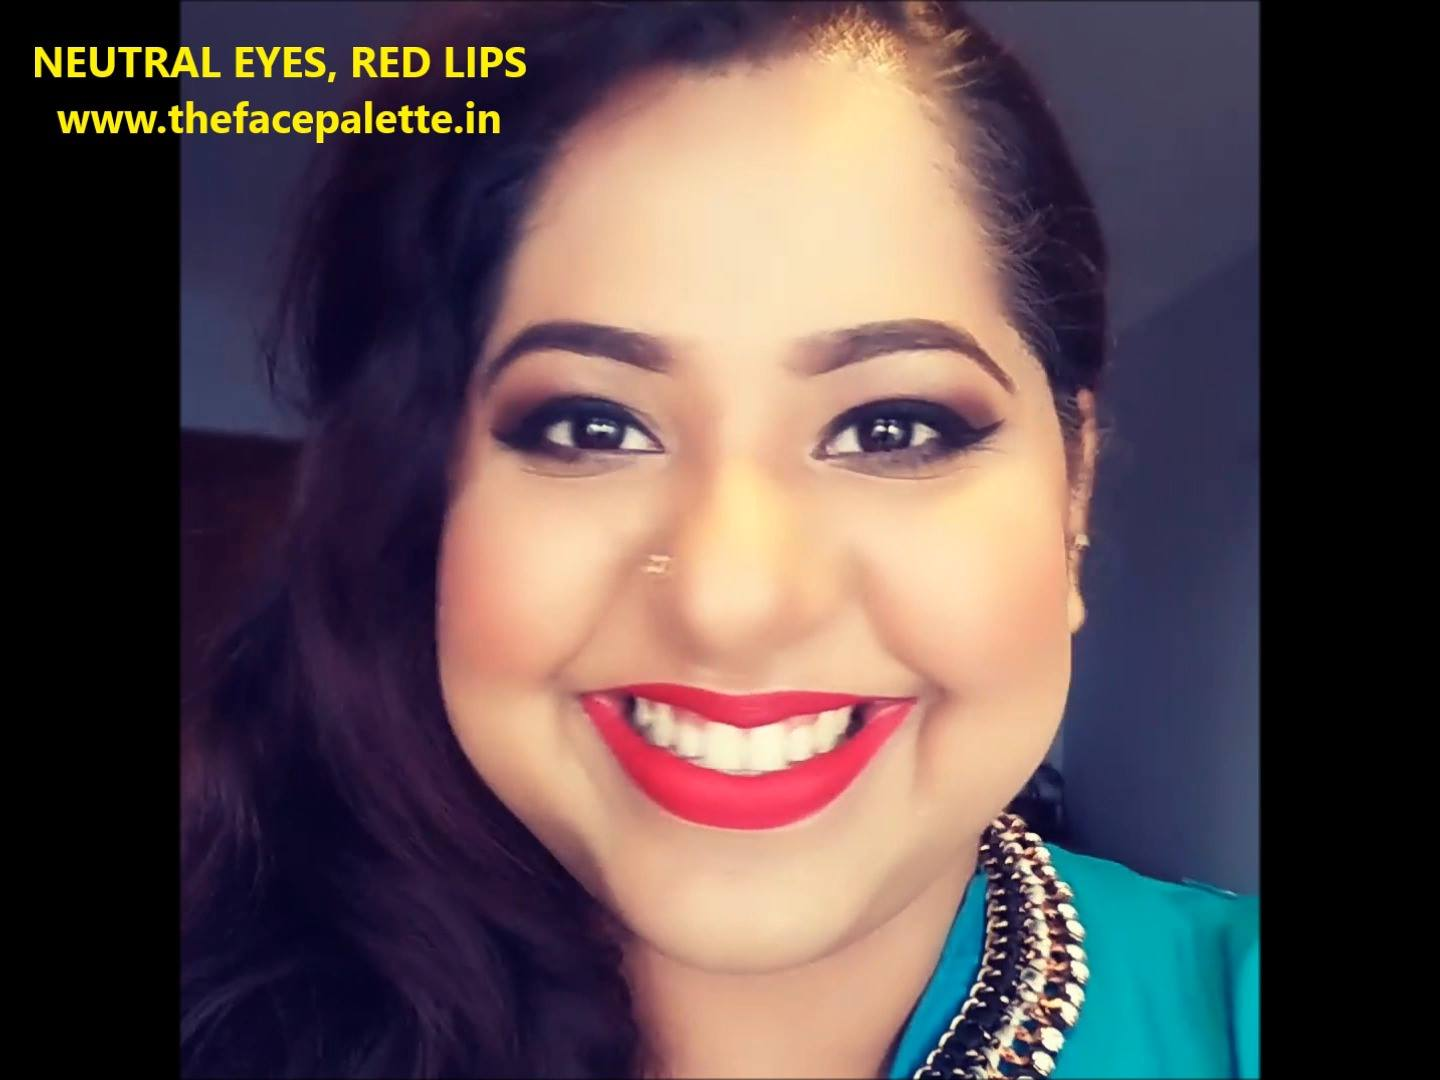 Neutral Eyes and Red Lips Clip!